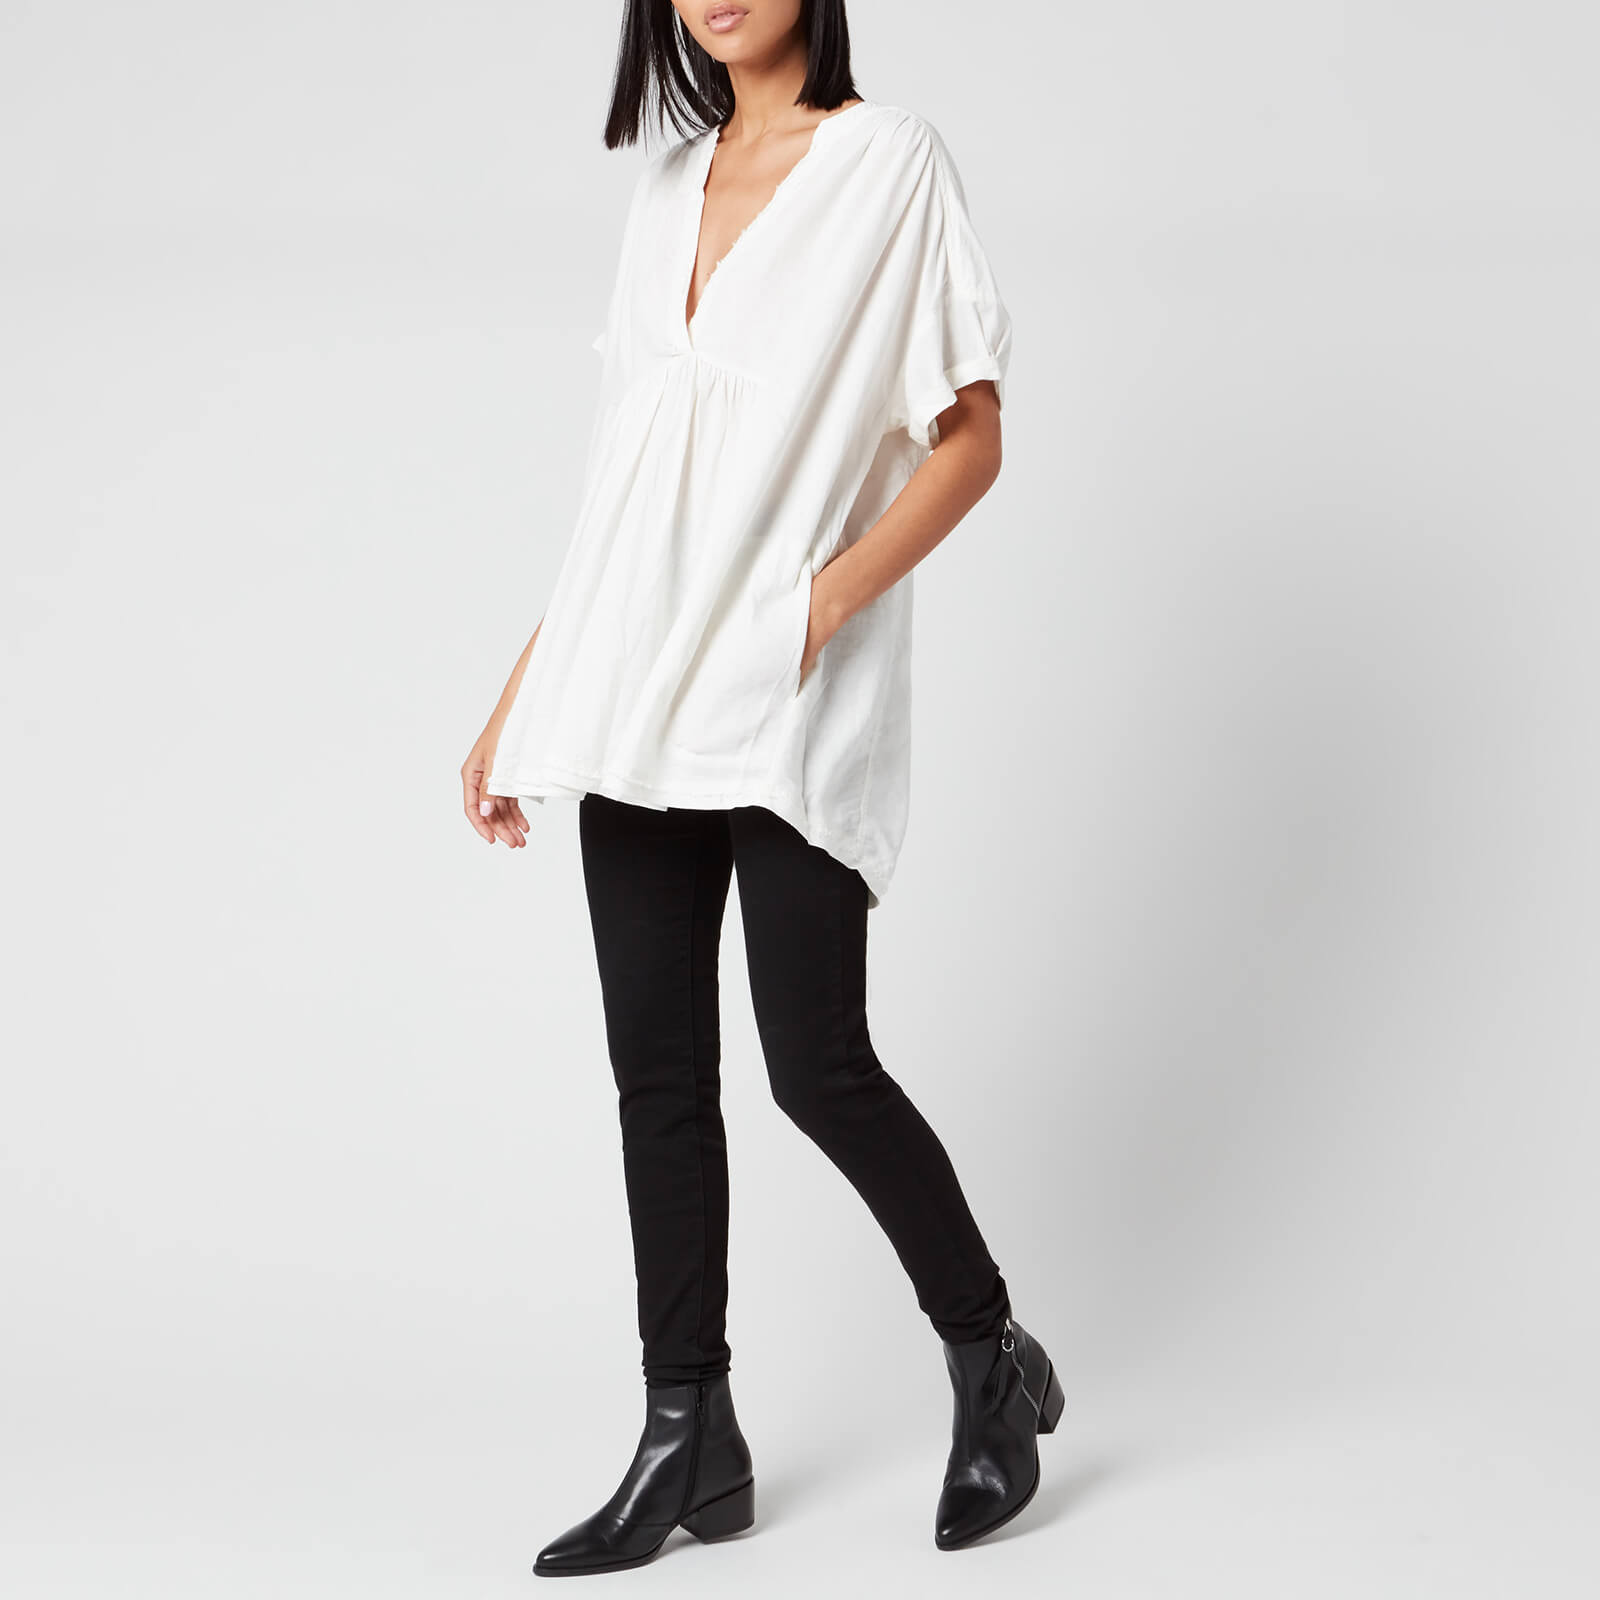 Free People Women's Getaway With Me Tunic - Ivory - M